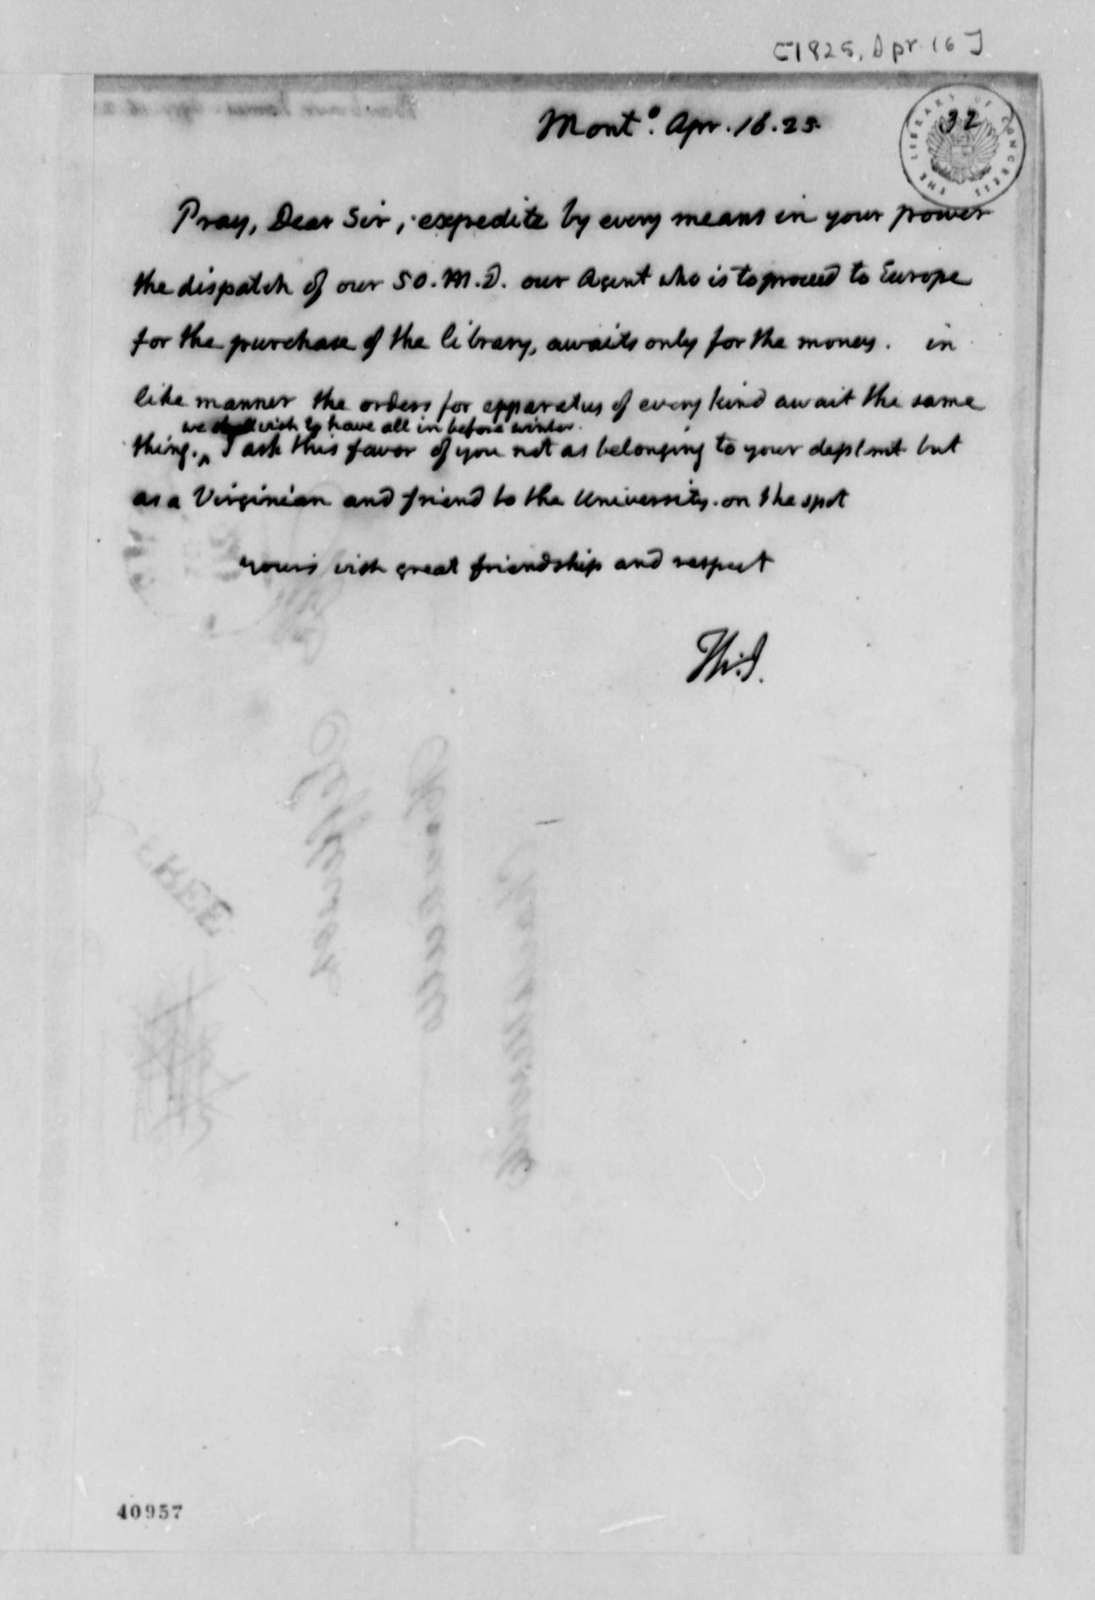 Thomas Jefferson to James Barbour, April 16, 1825